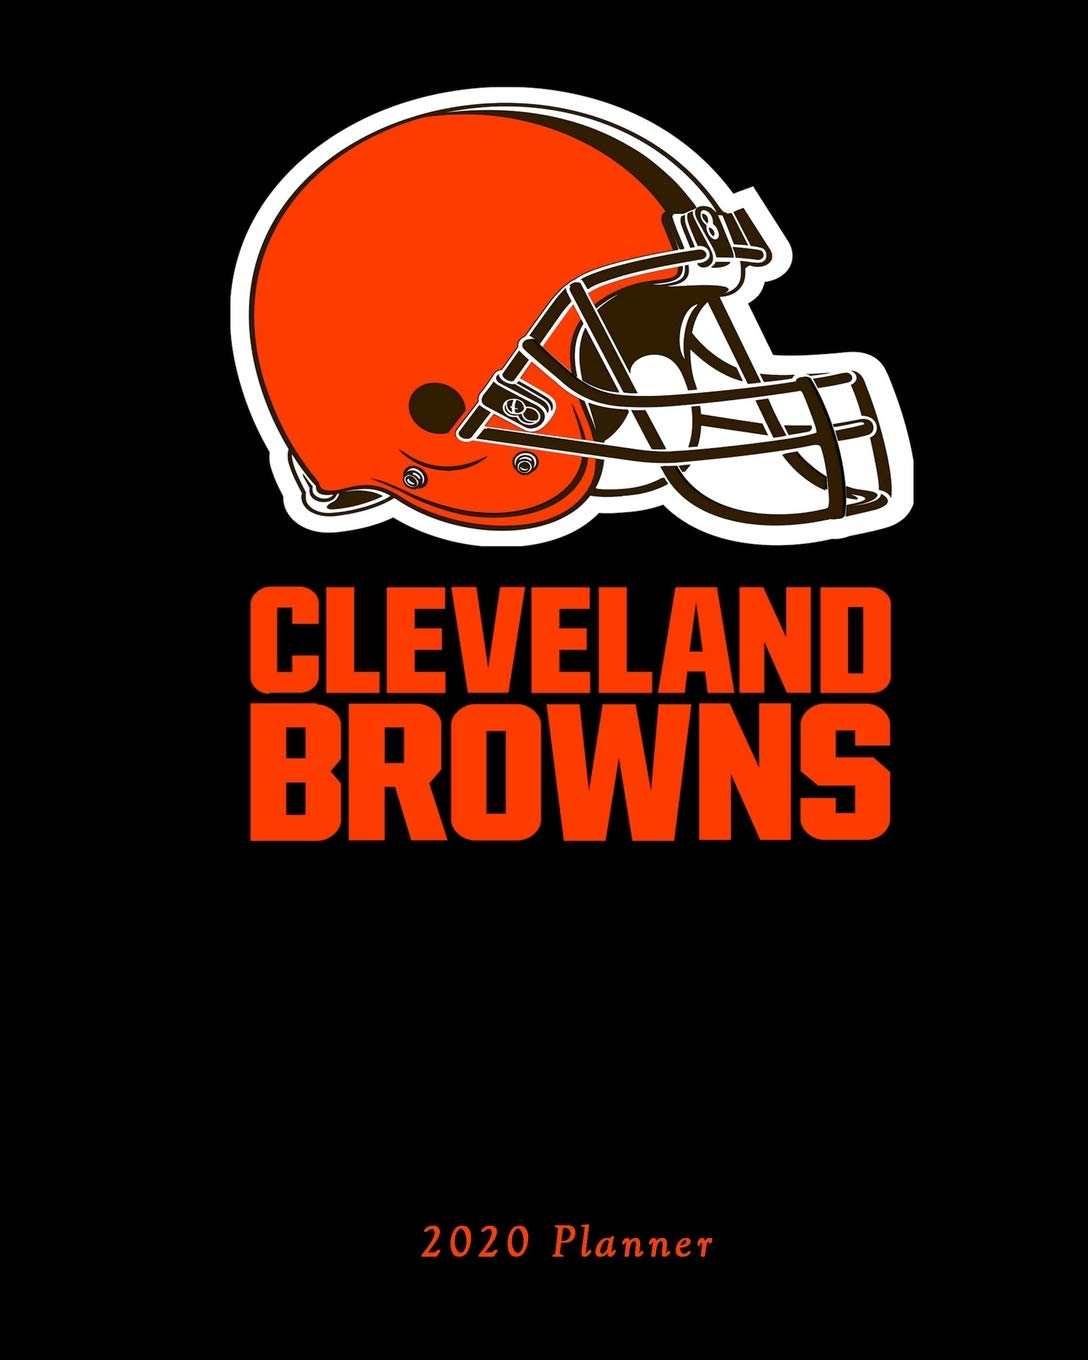 Cleveland Browns 2020 Schedule.Cleveland Browns 2020 Planner Calendar Agenda Daily Monthly